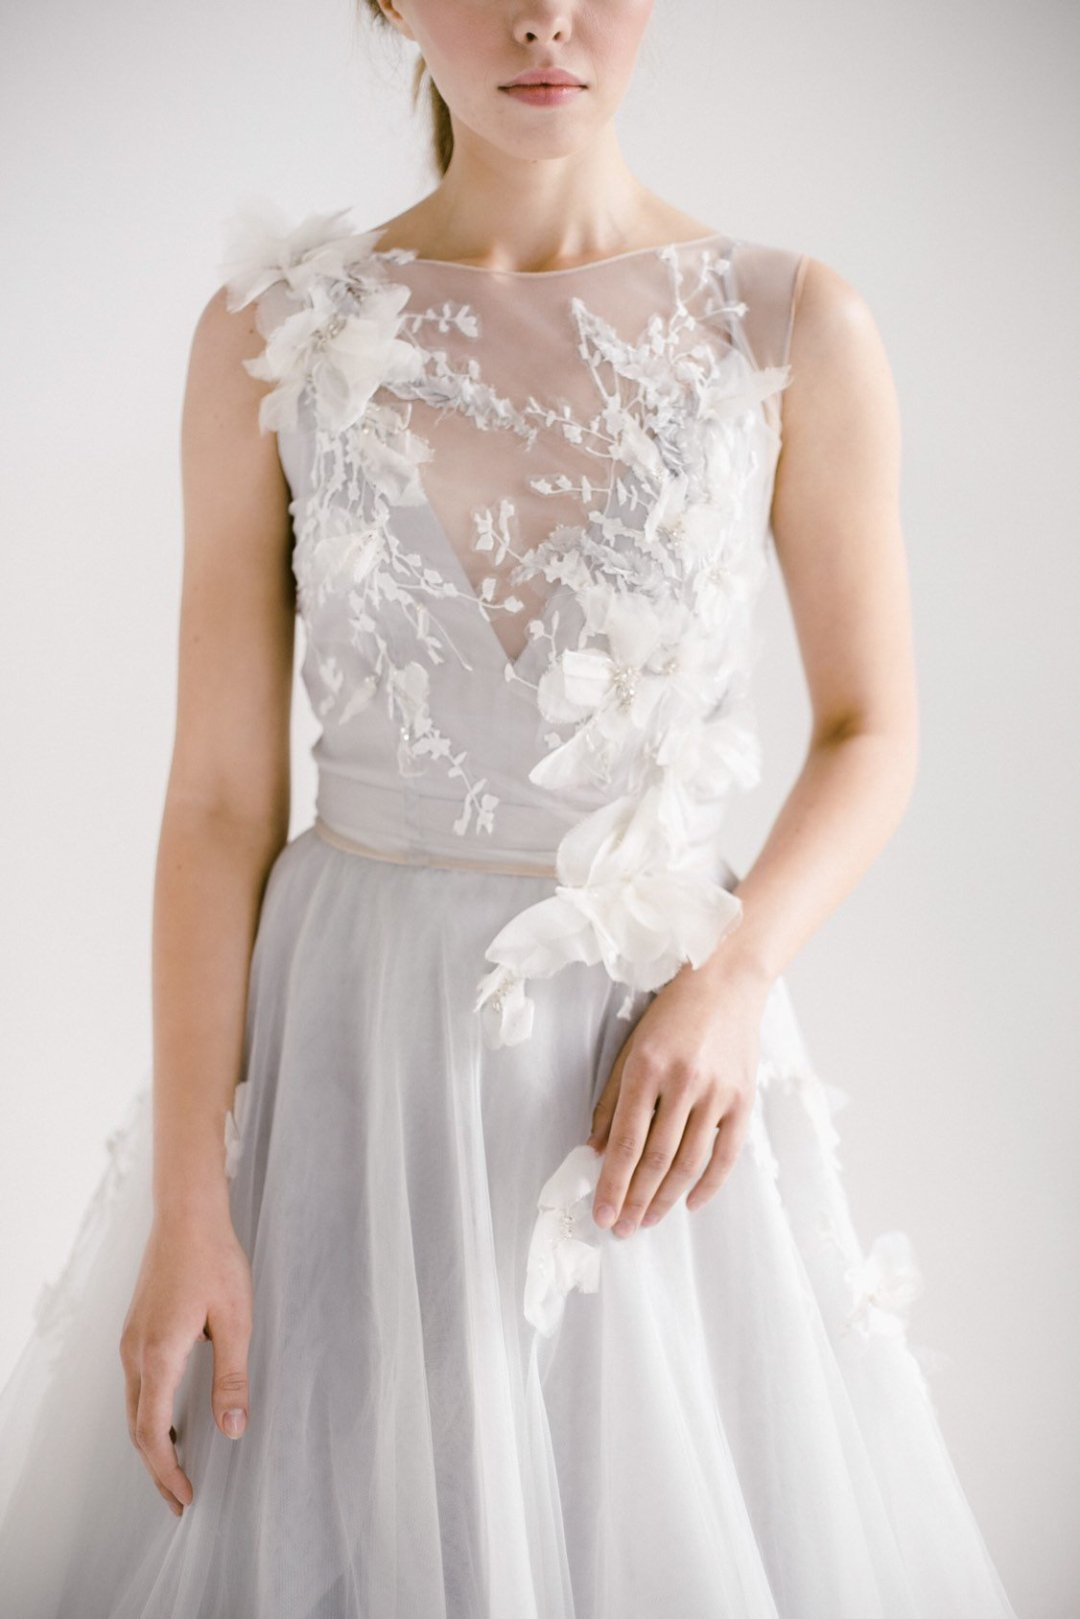 Etsy's Top Shops for Wedding Dresses, Accessories, Decor, and Gifts